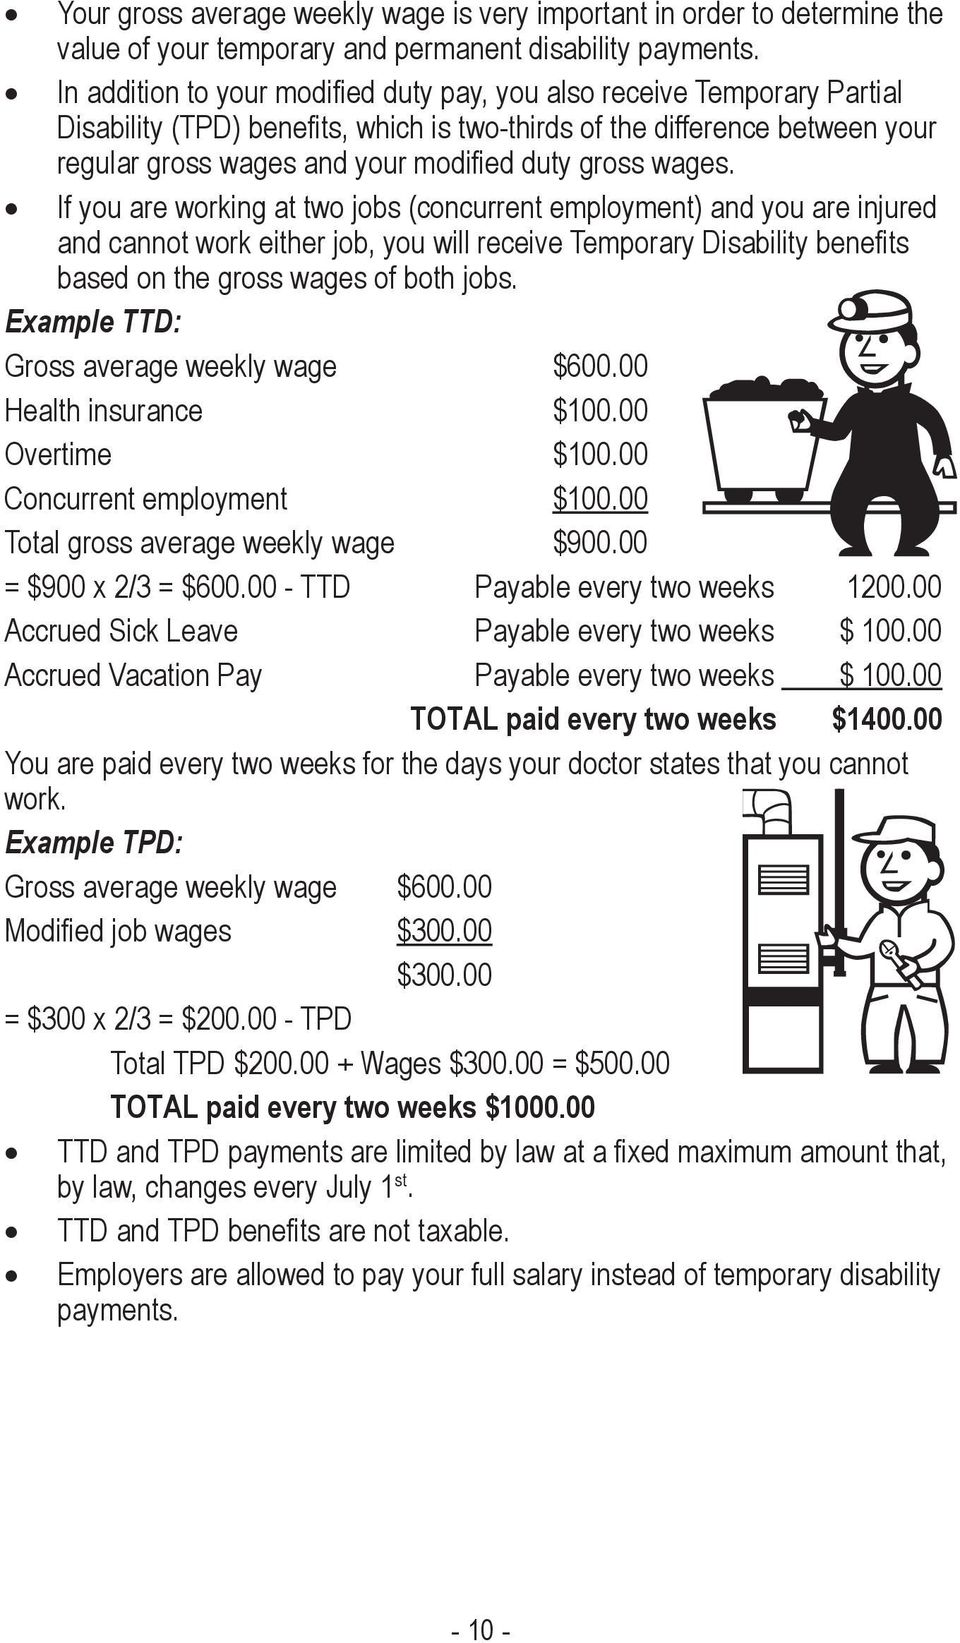 wages. If you are working at two jobs (concurrent employment) and you are injured and cannot work either job, you will receive Temporary Disability bene ts based on the gross wages of both jobs.